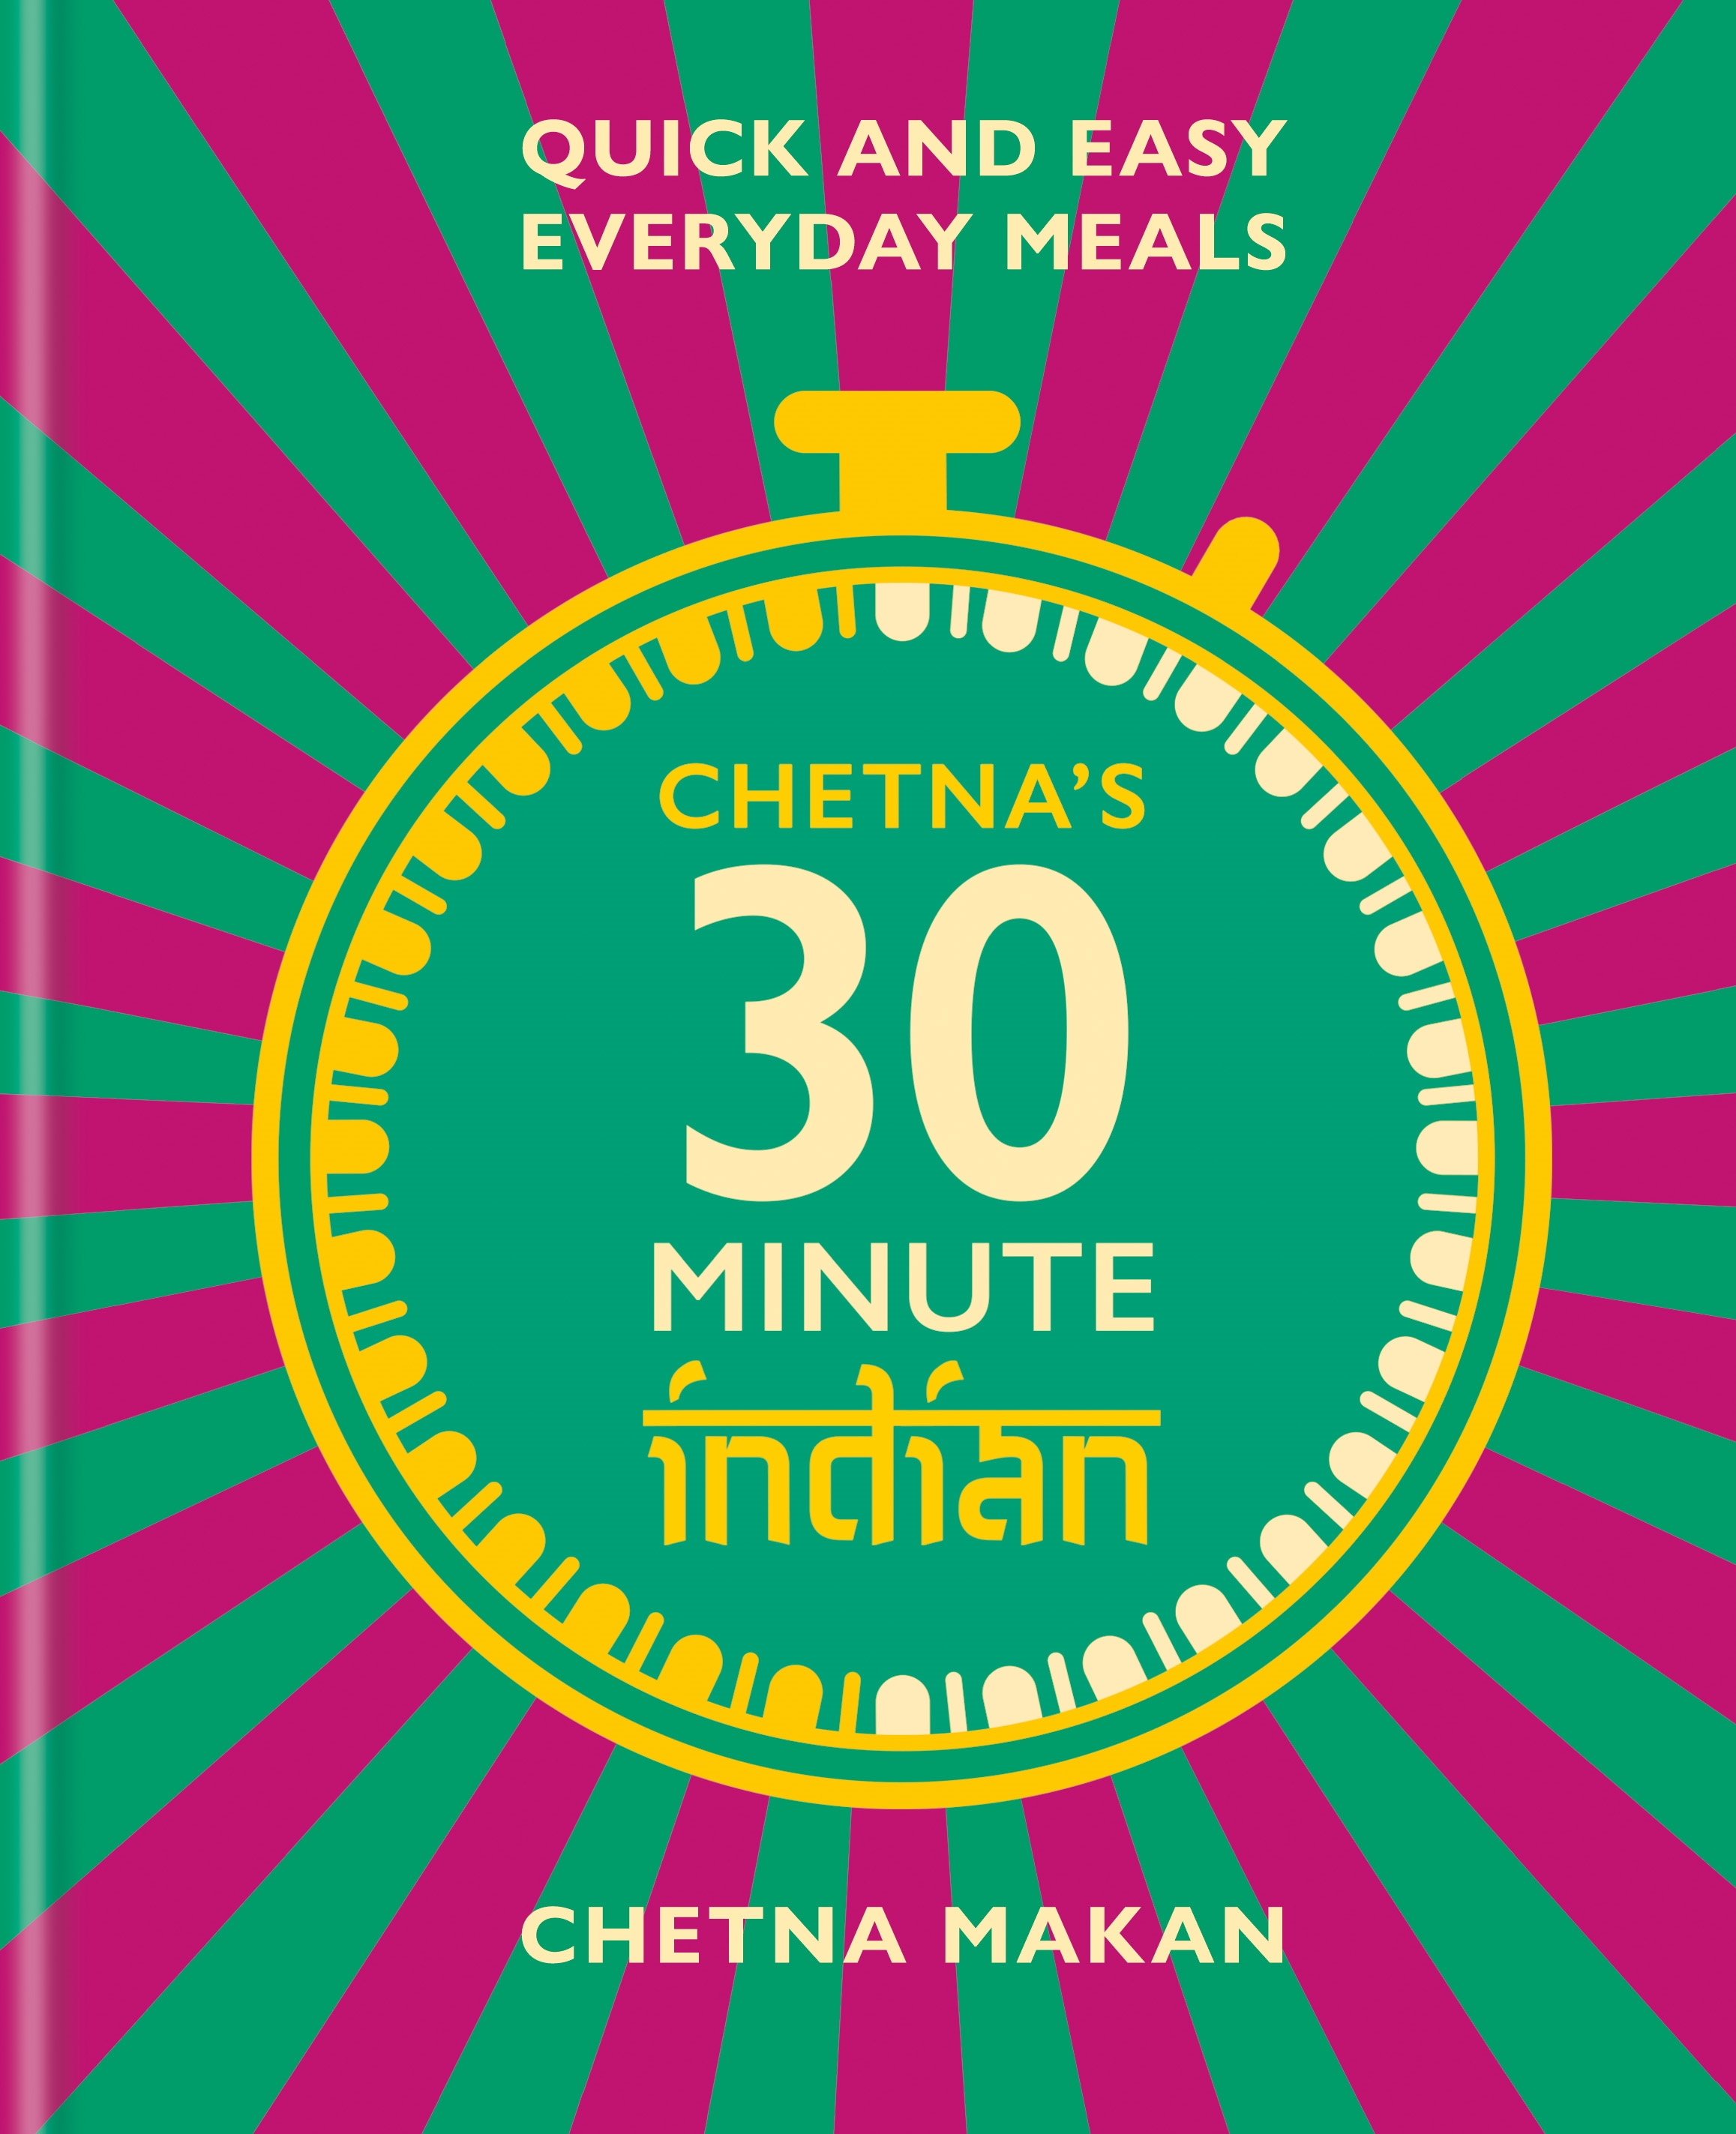 Chetna's 30 Minute Indian